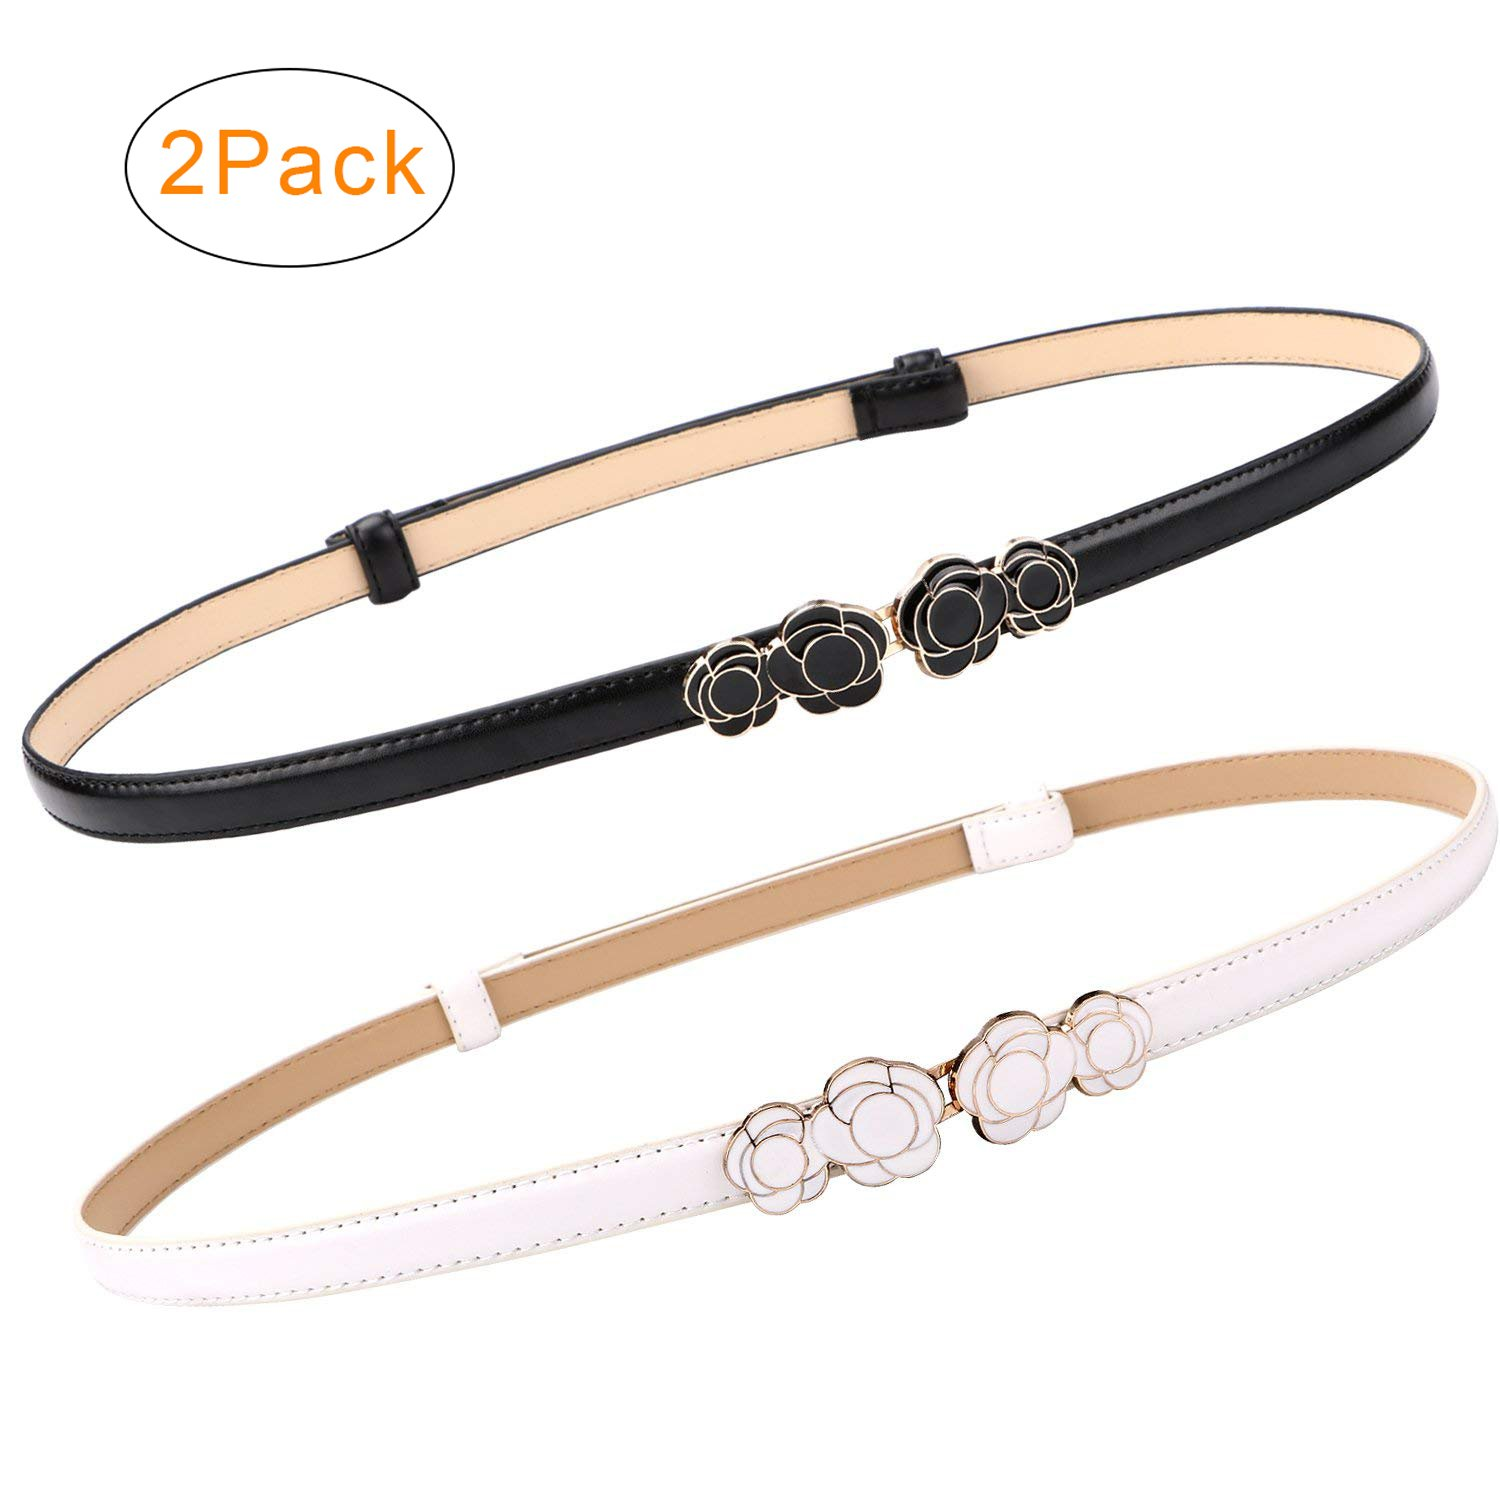 2 Pack Women Skinny Leather Belts Thin Waist Belt for Dresses Fashion Adjustable Black with Interlocking Buckle